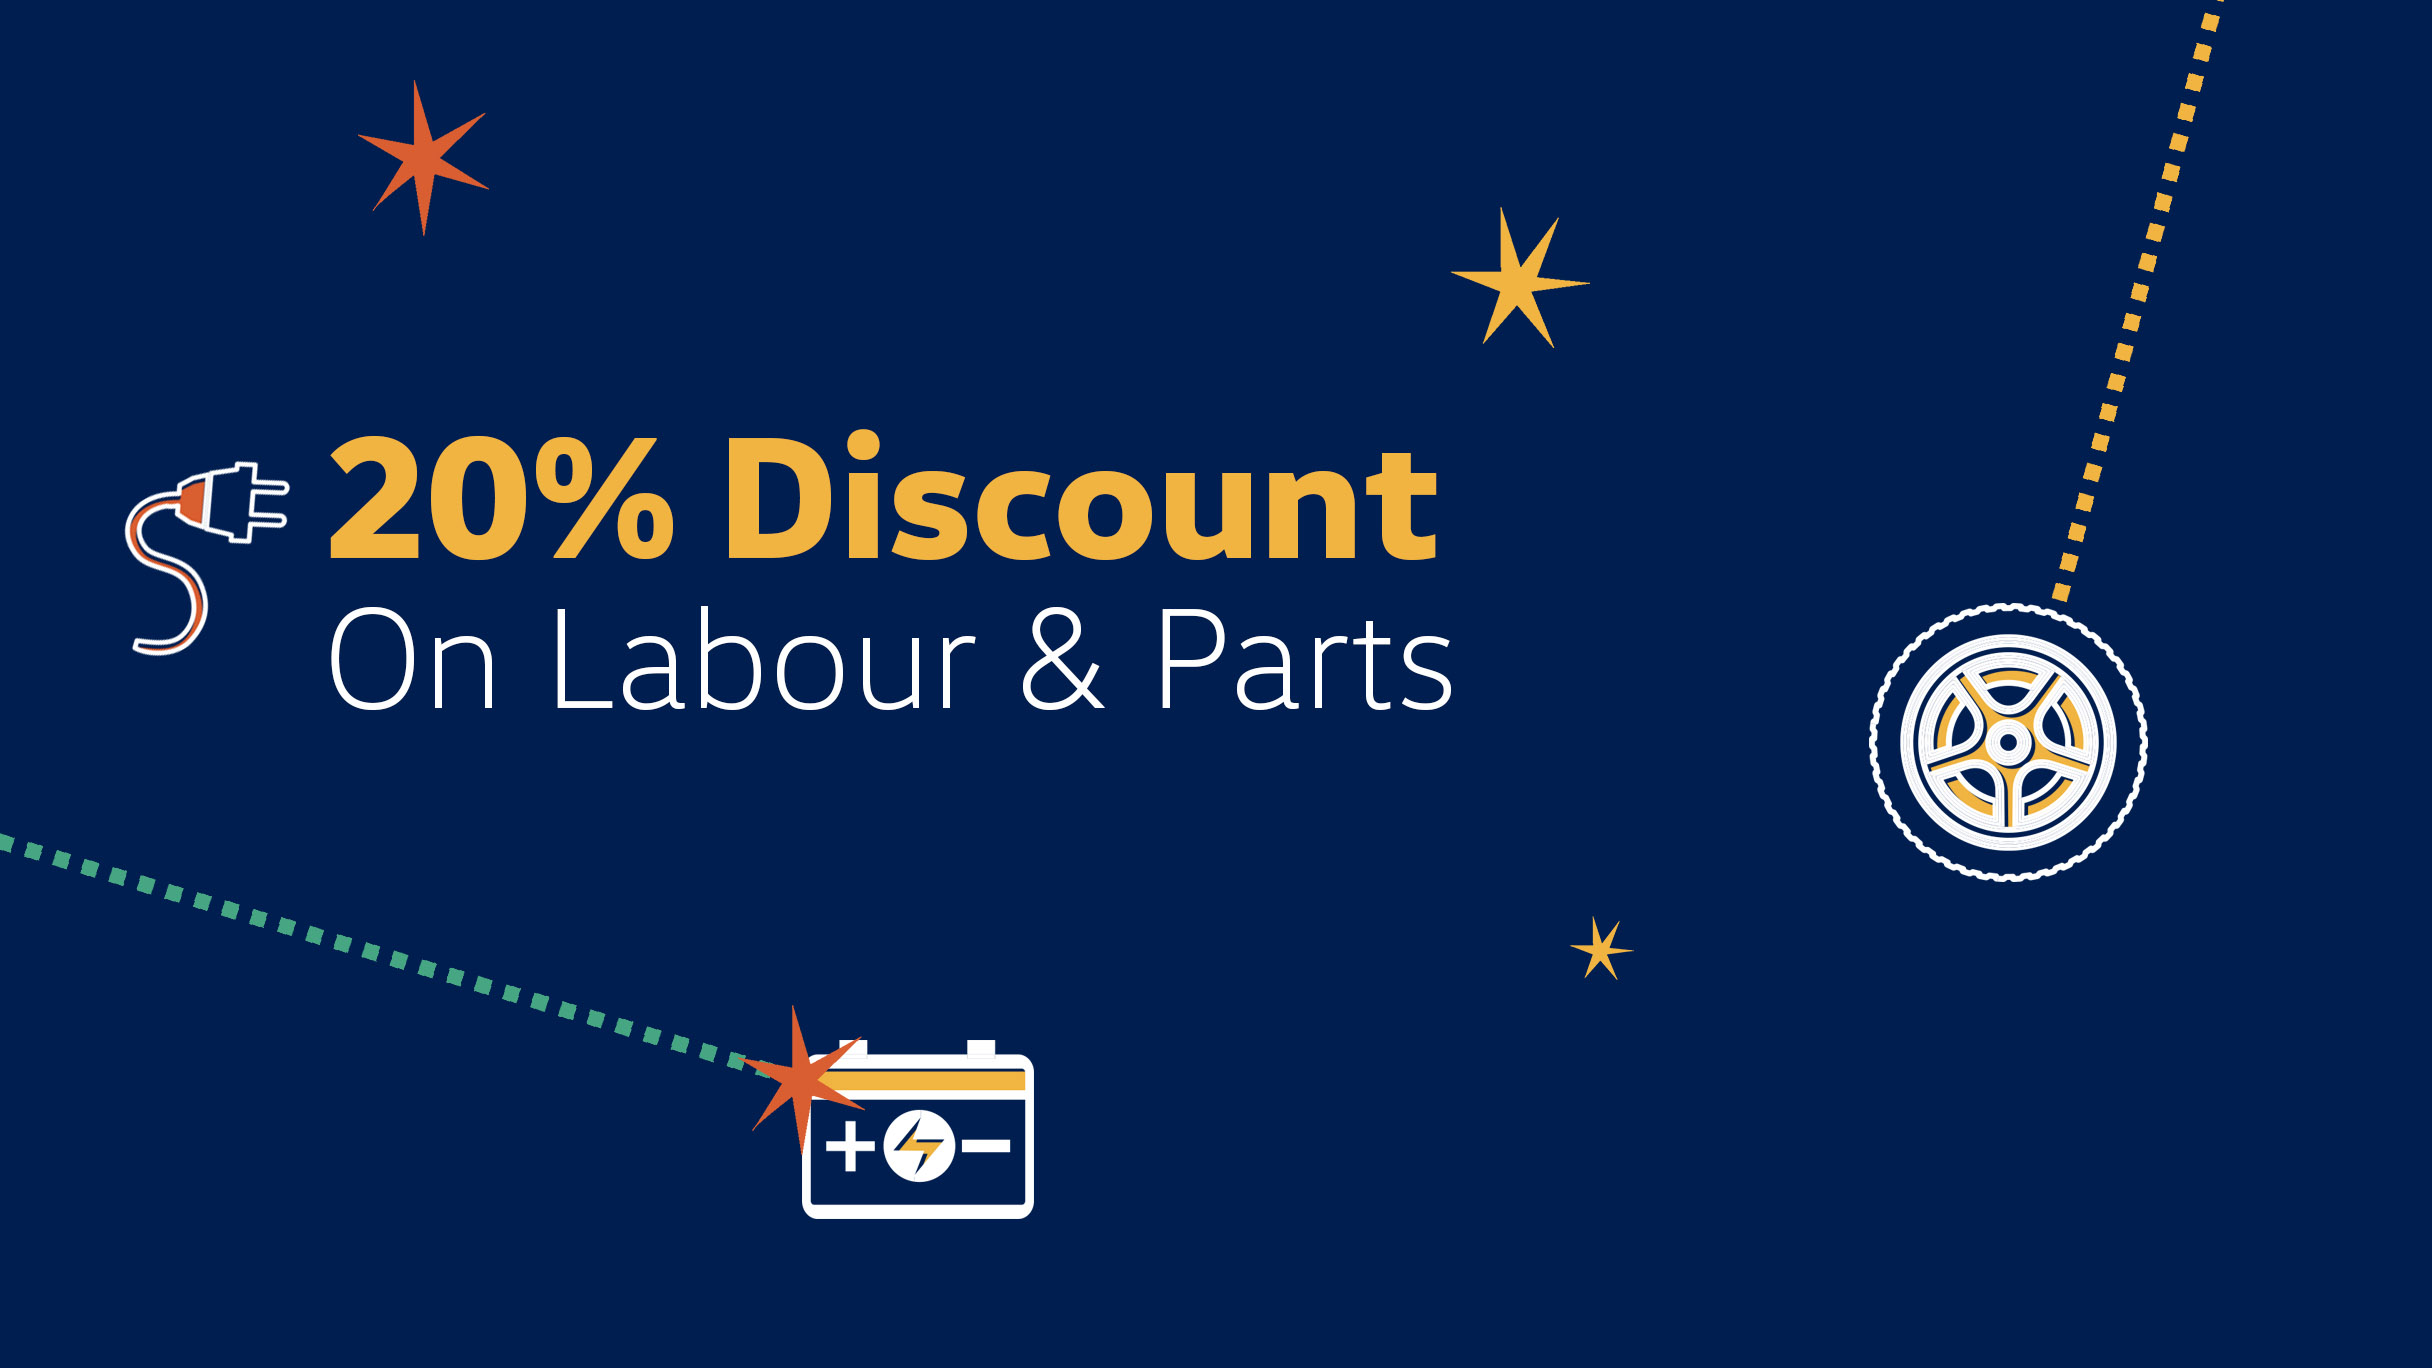 Discount on labour and part Barons Durban dealership, KZN